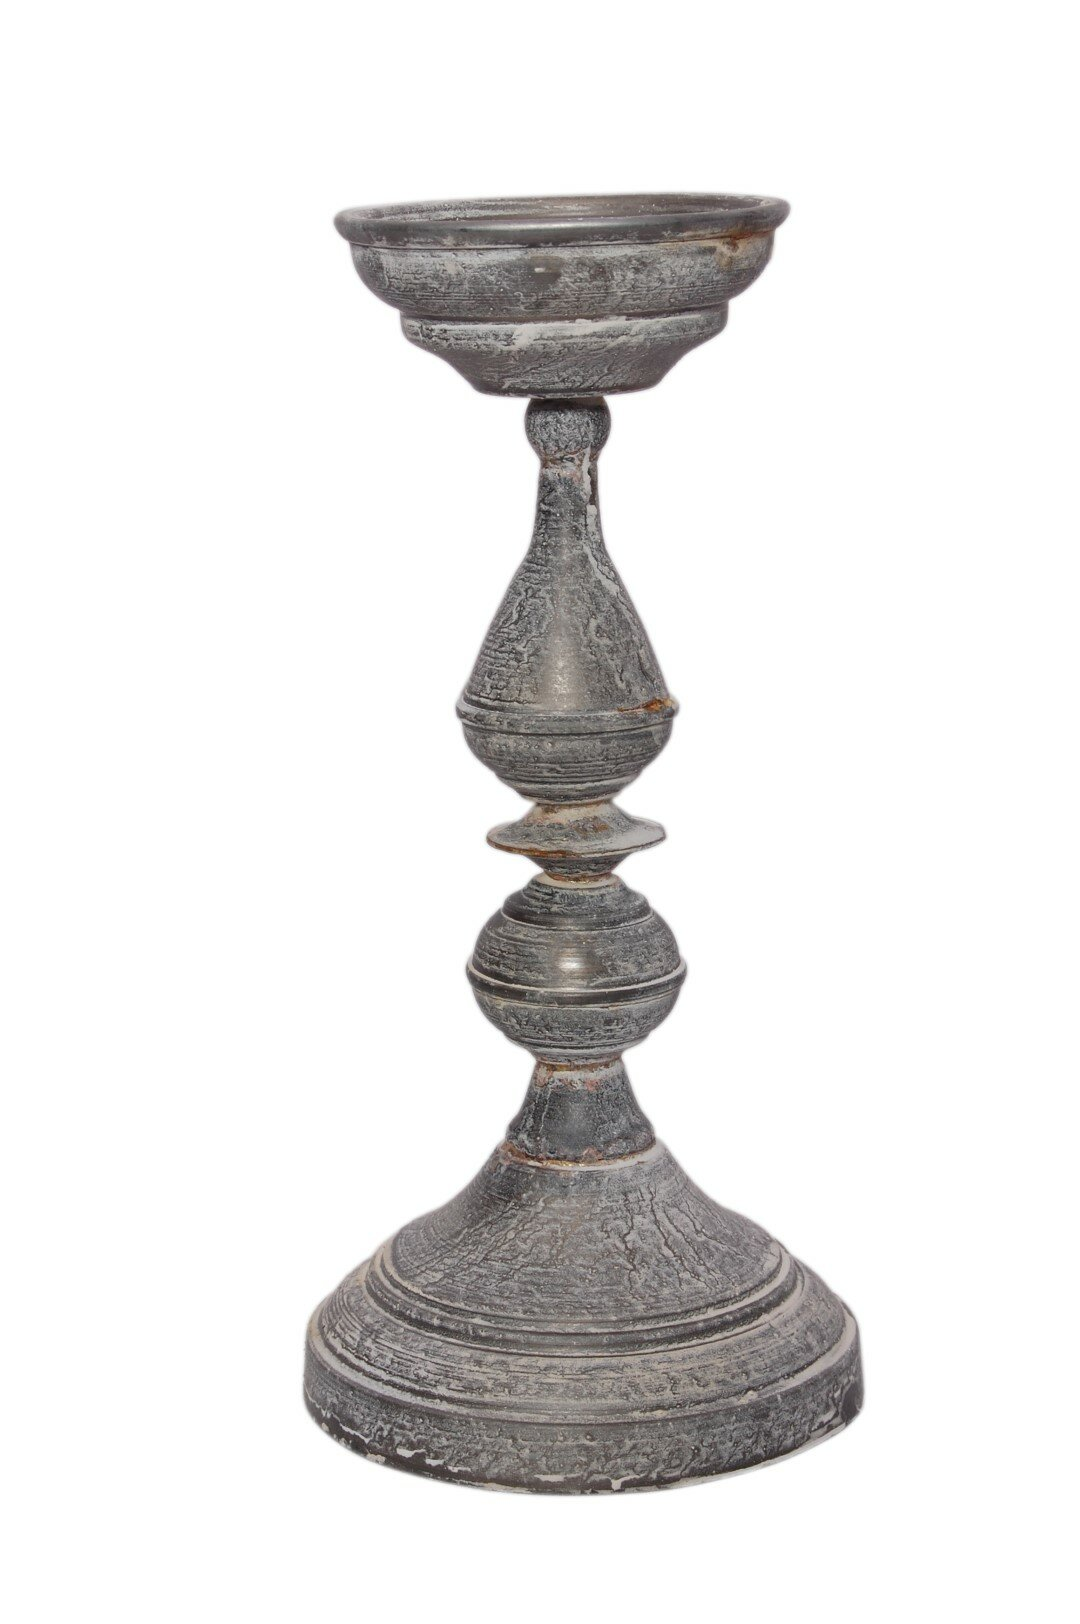 Ophelia Co Galvanized Metal Candlestick Reviews Wayfair